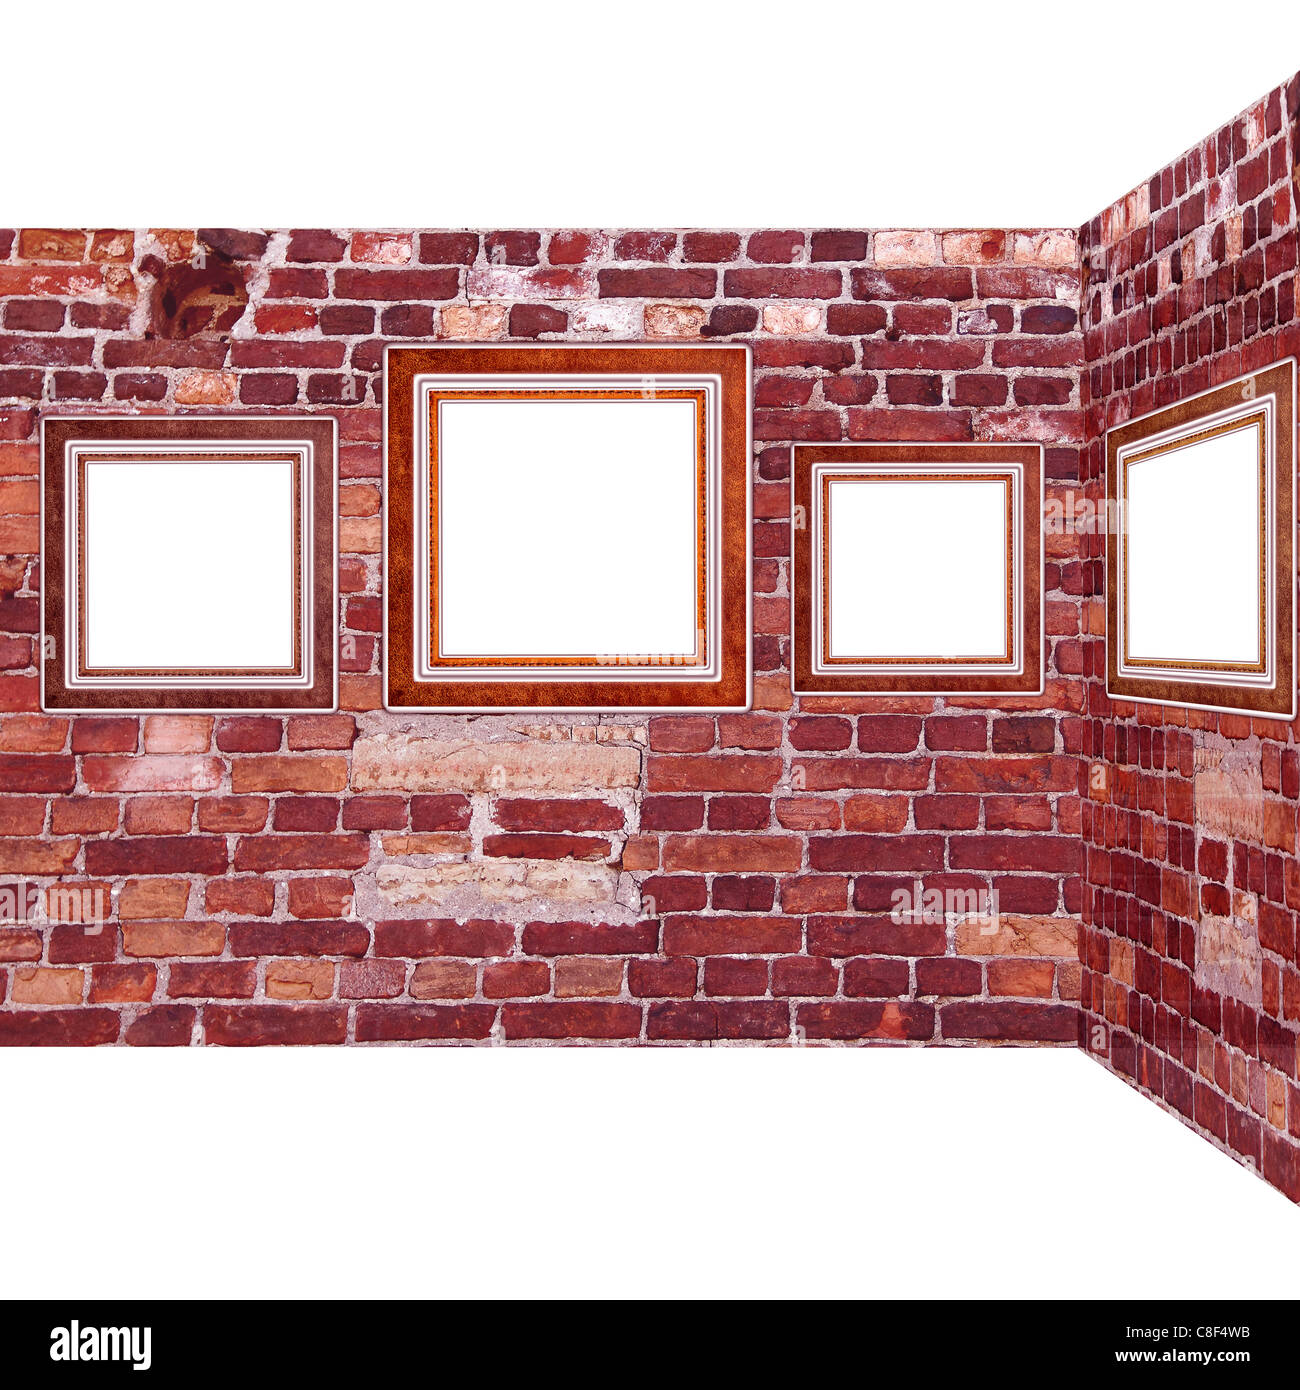 Art gallery. Frames old leather on a brickwall. - Stock Image